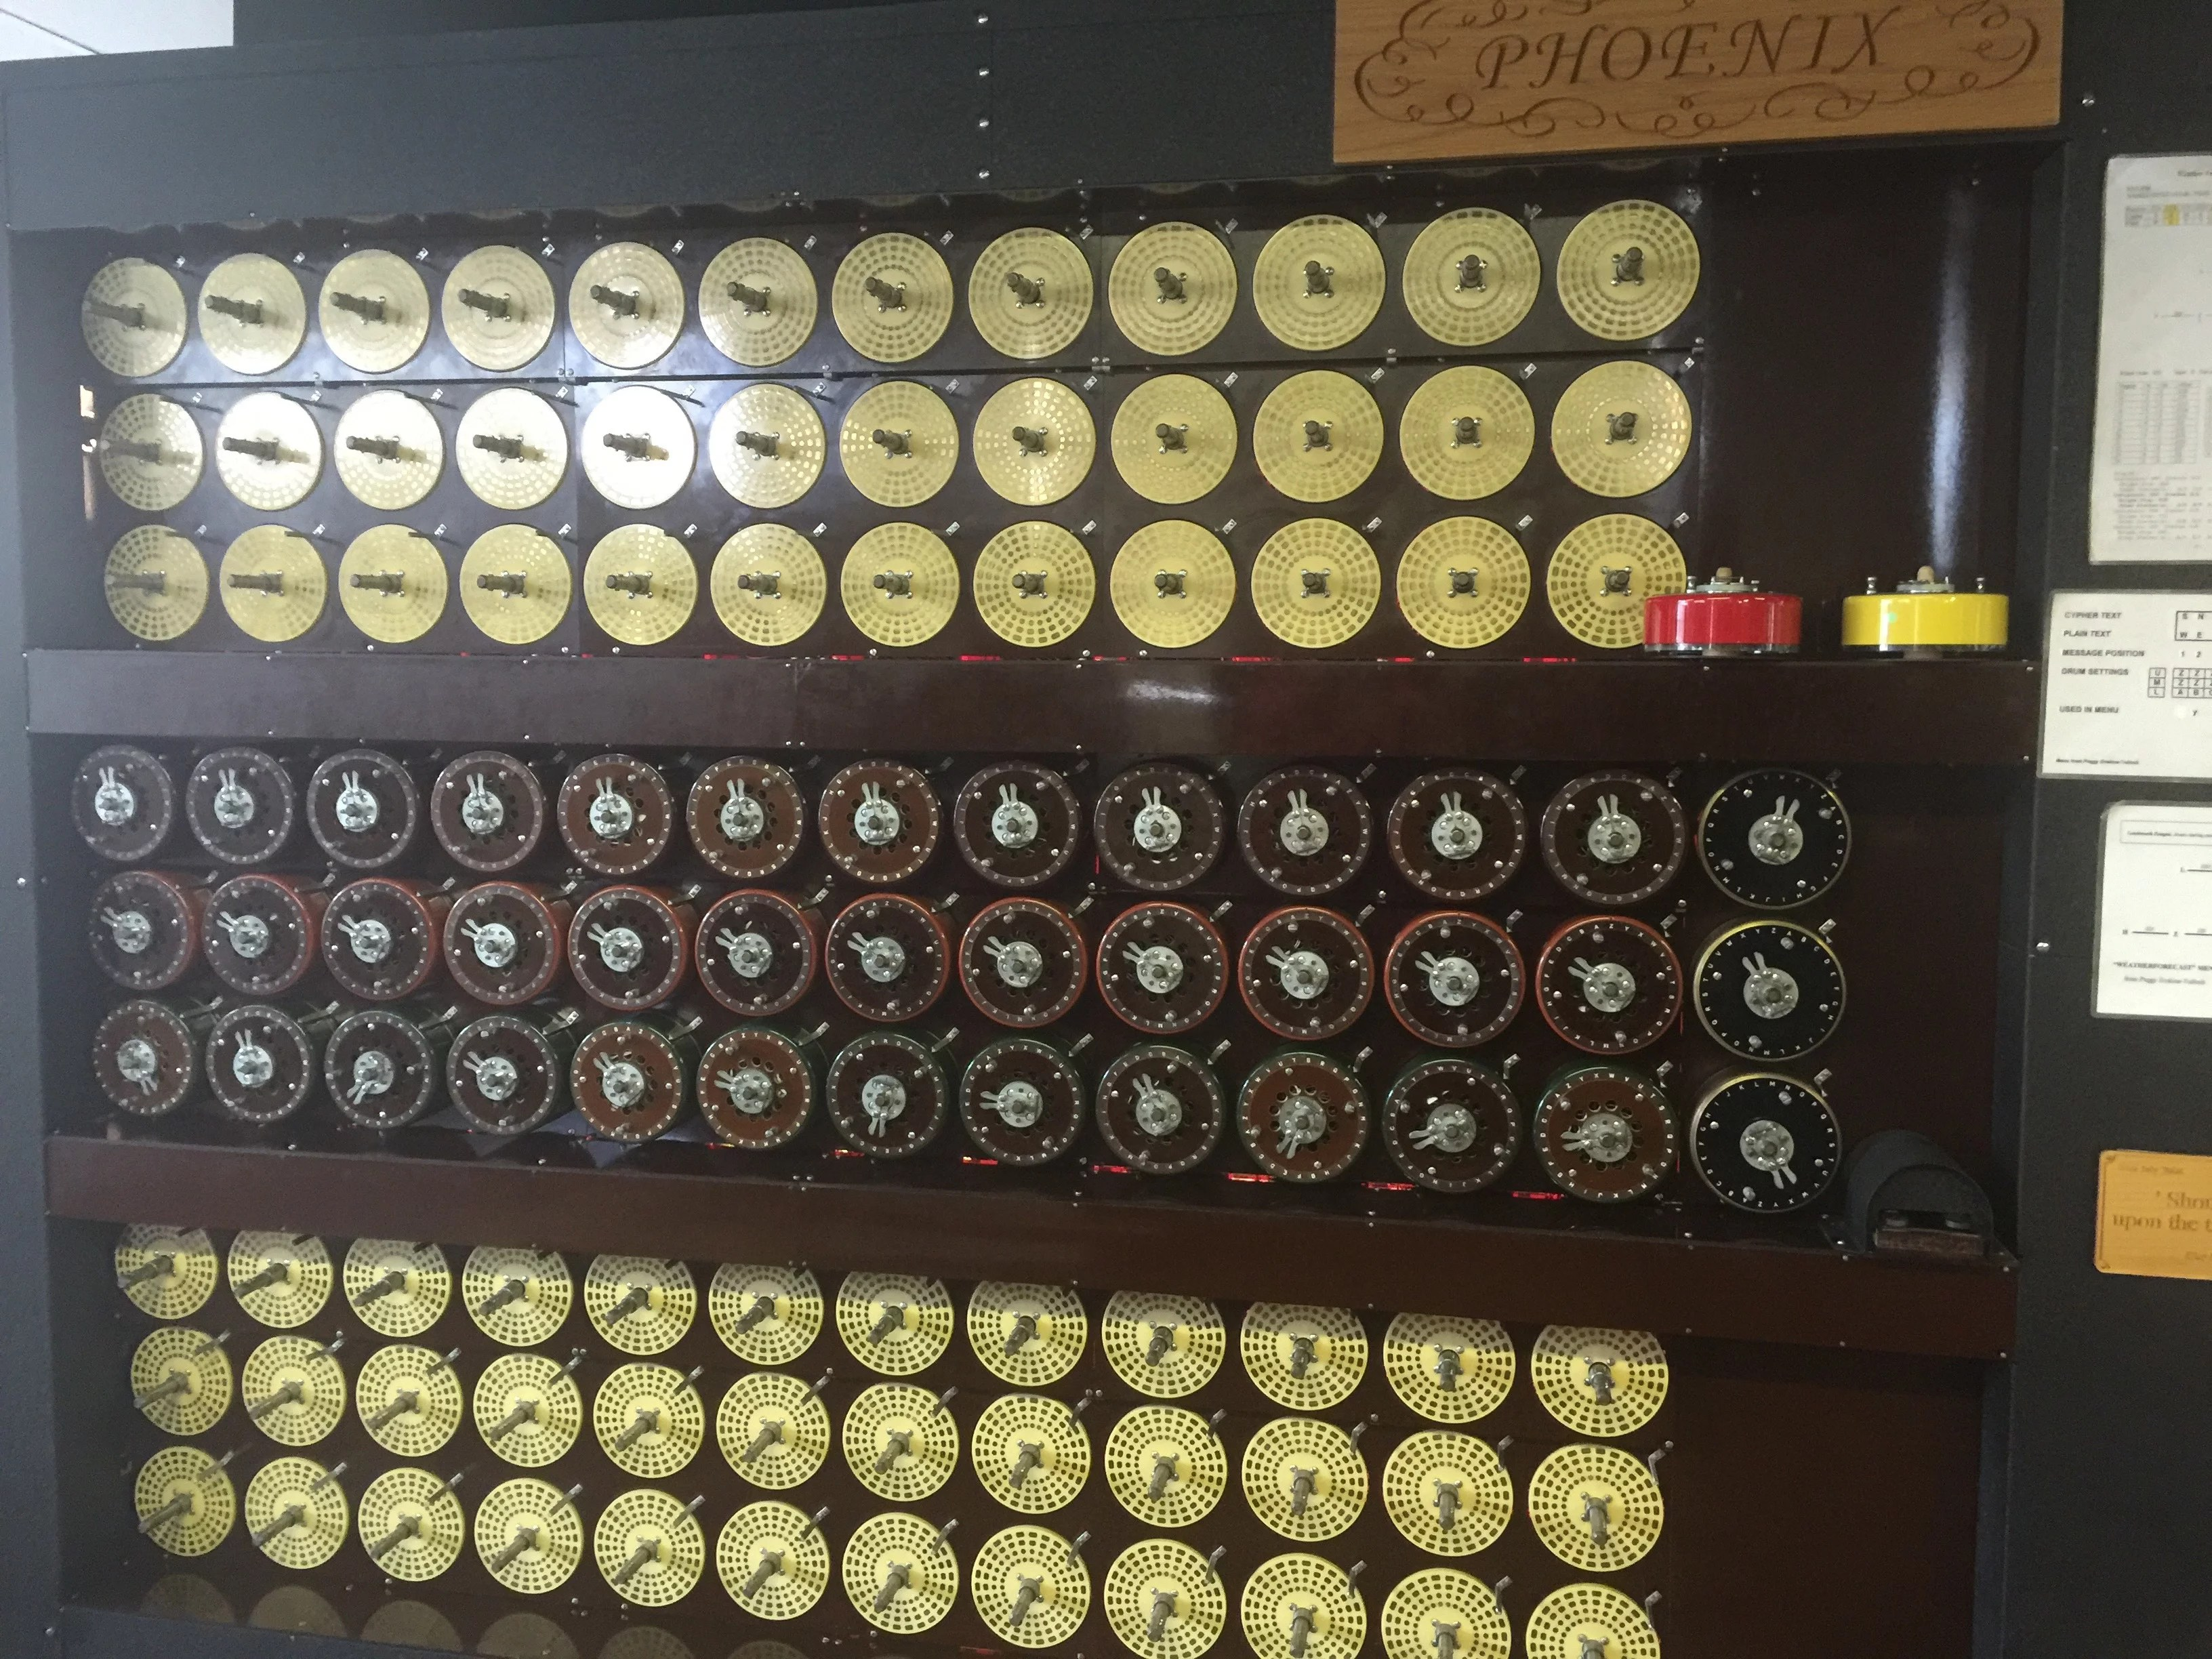 front of a reconstructed Bombe machine